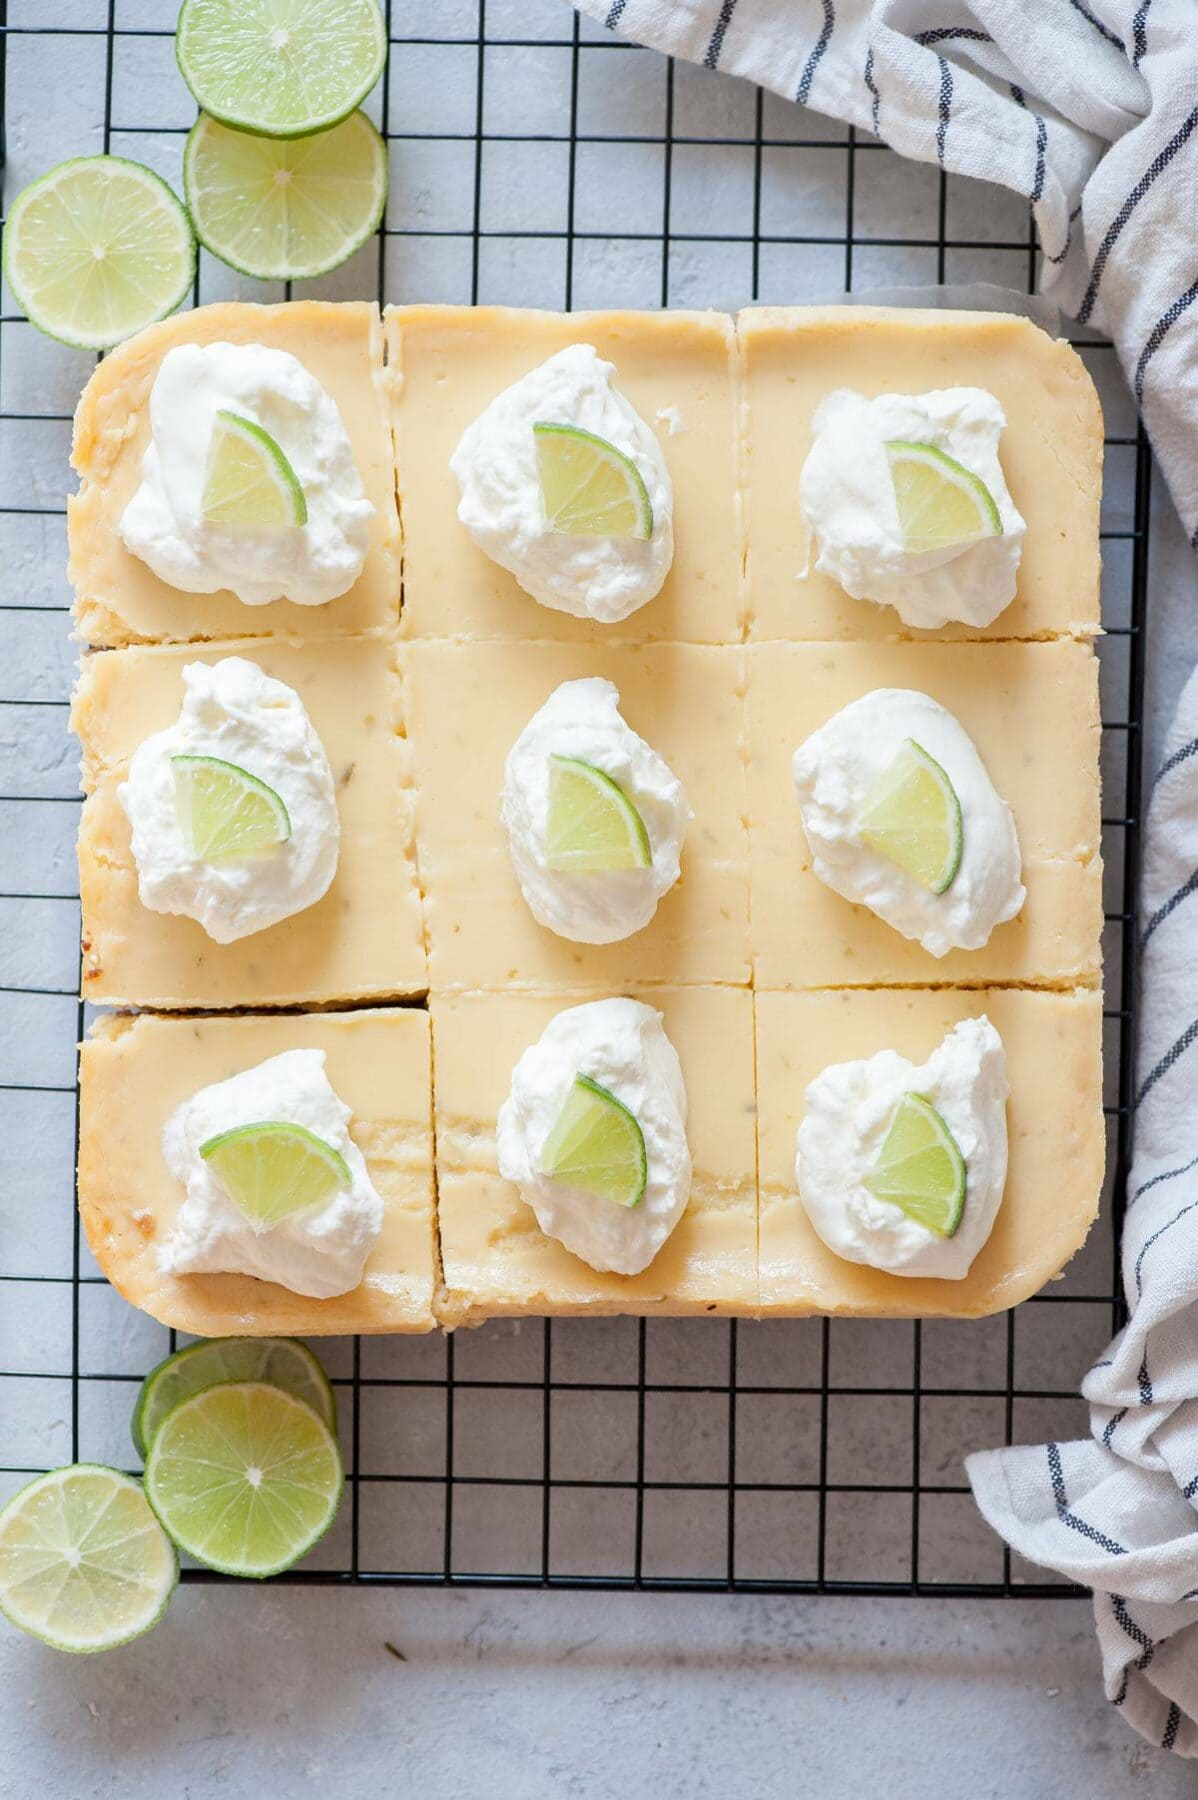 Key lime pie bars topped with whipped cream and lime slices on a black cooking rack.